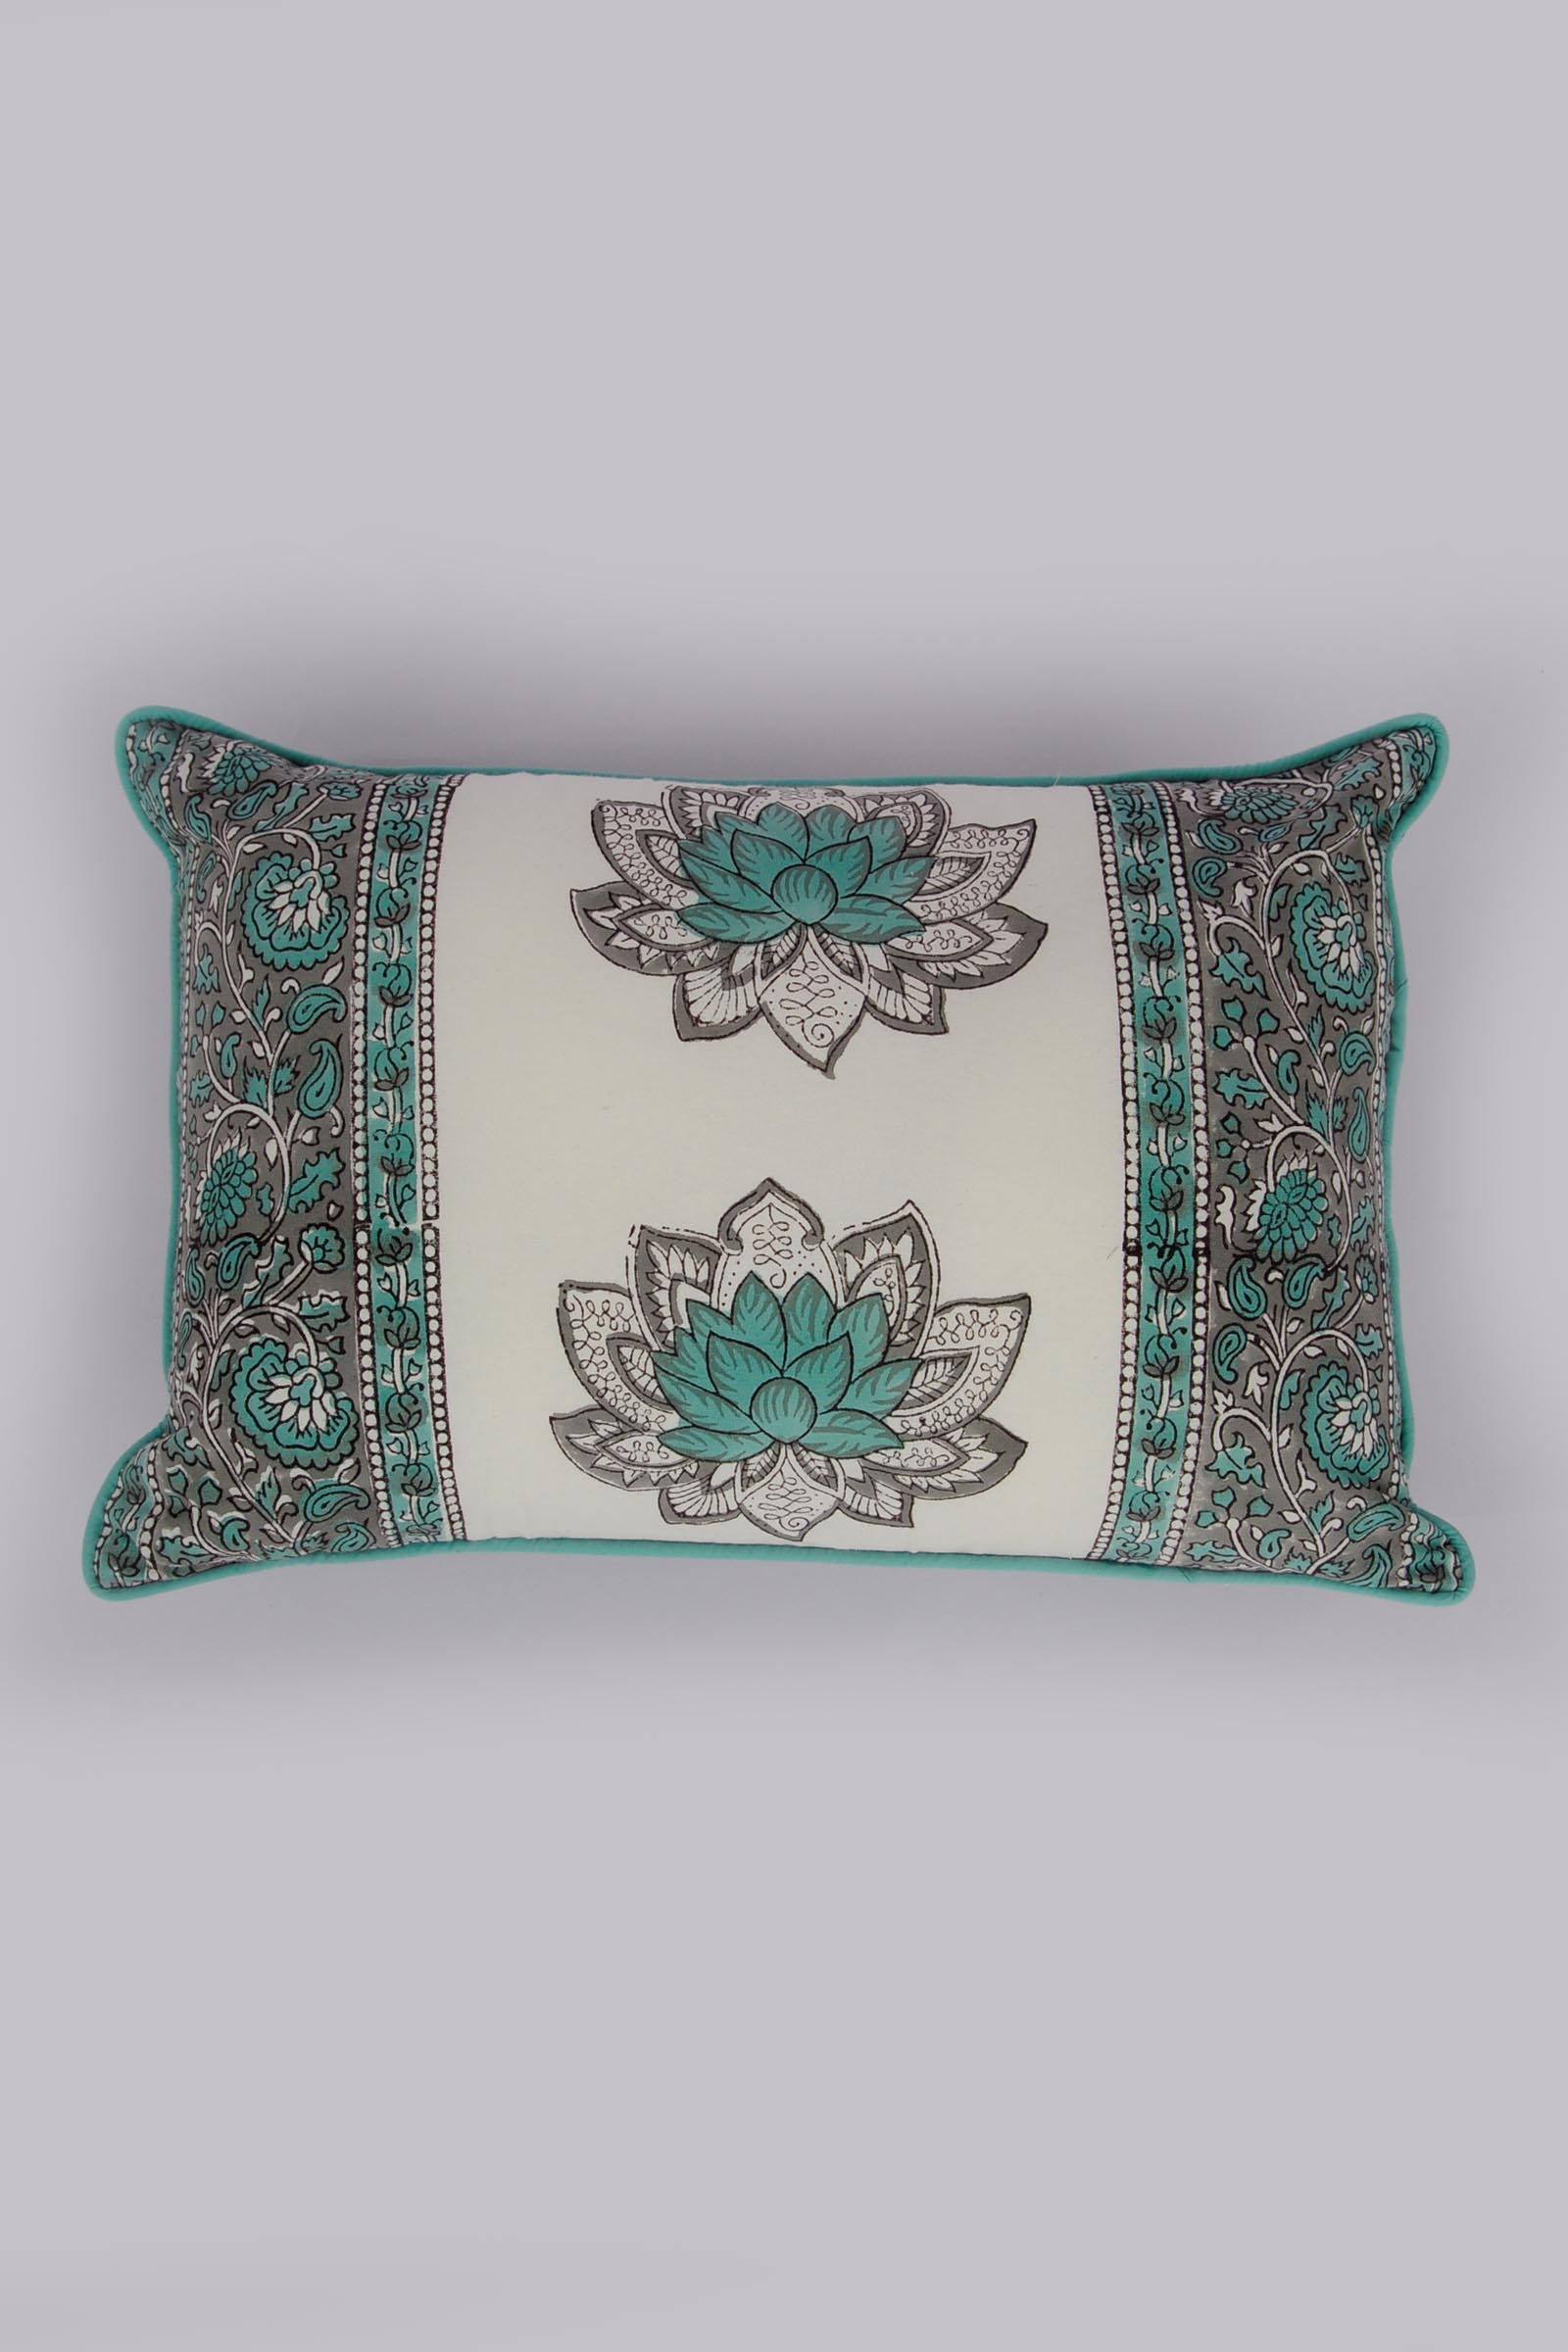 Lotus Sonata 12*18 Cushion Cover